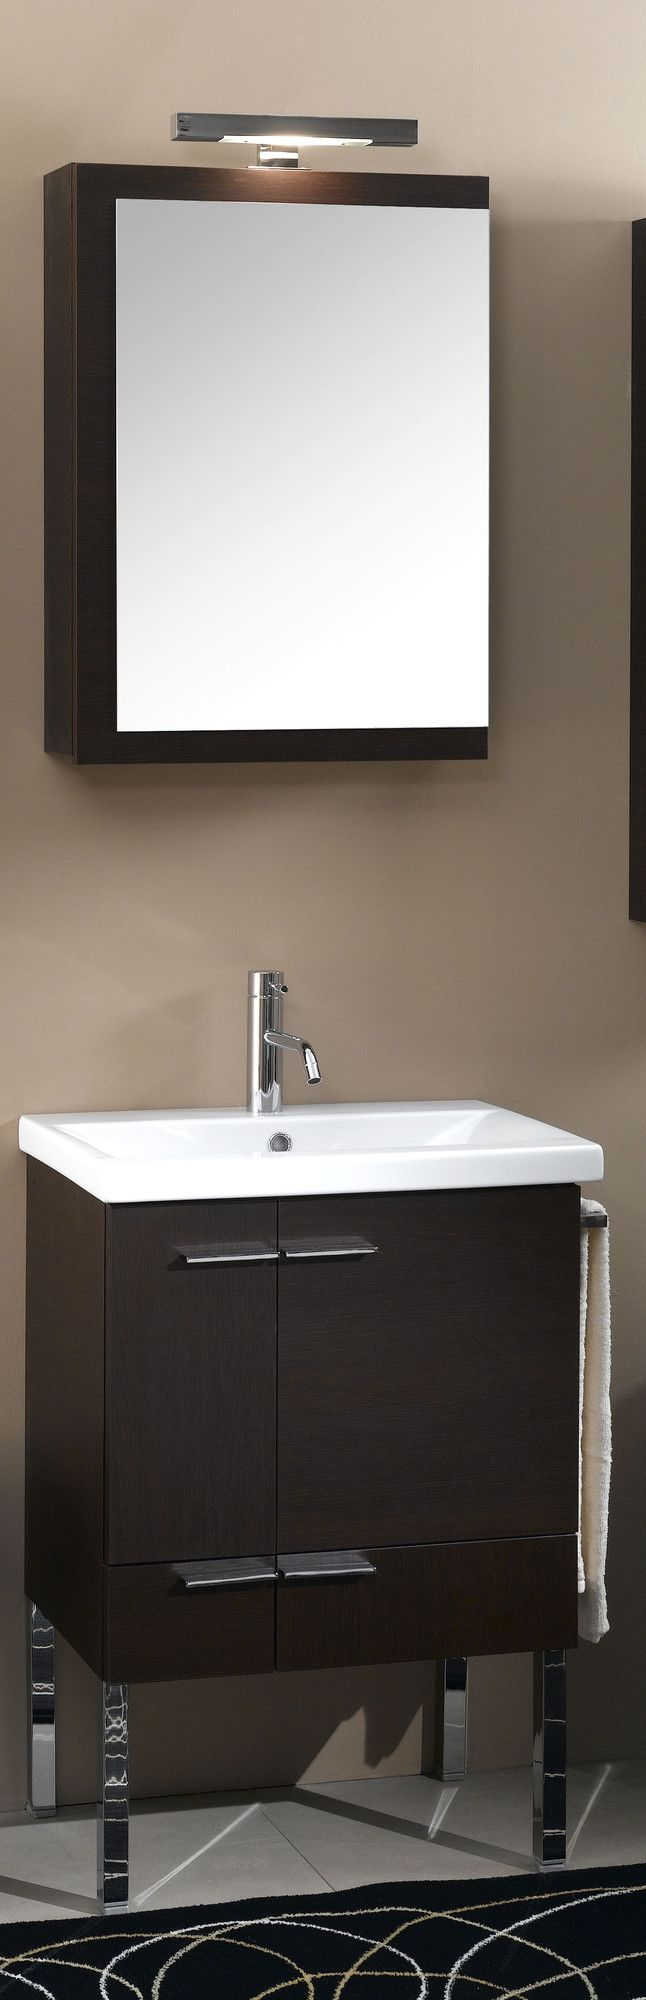 Picture Collection Website Simple Wall Mounted Bathroom Vanity Set Wayfair